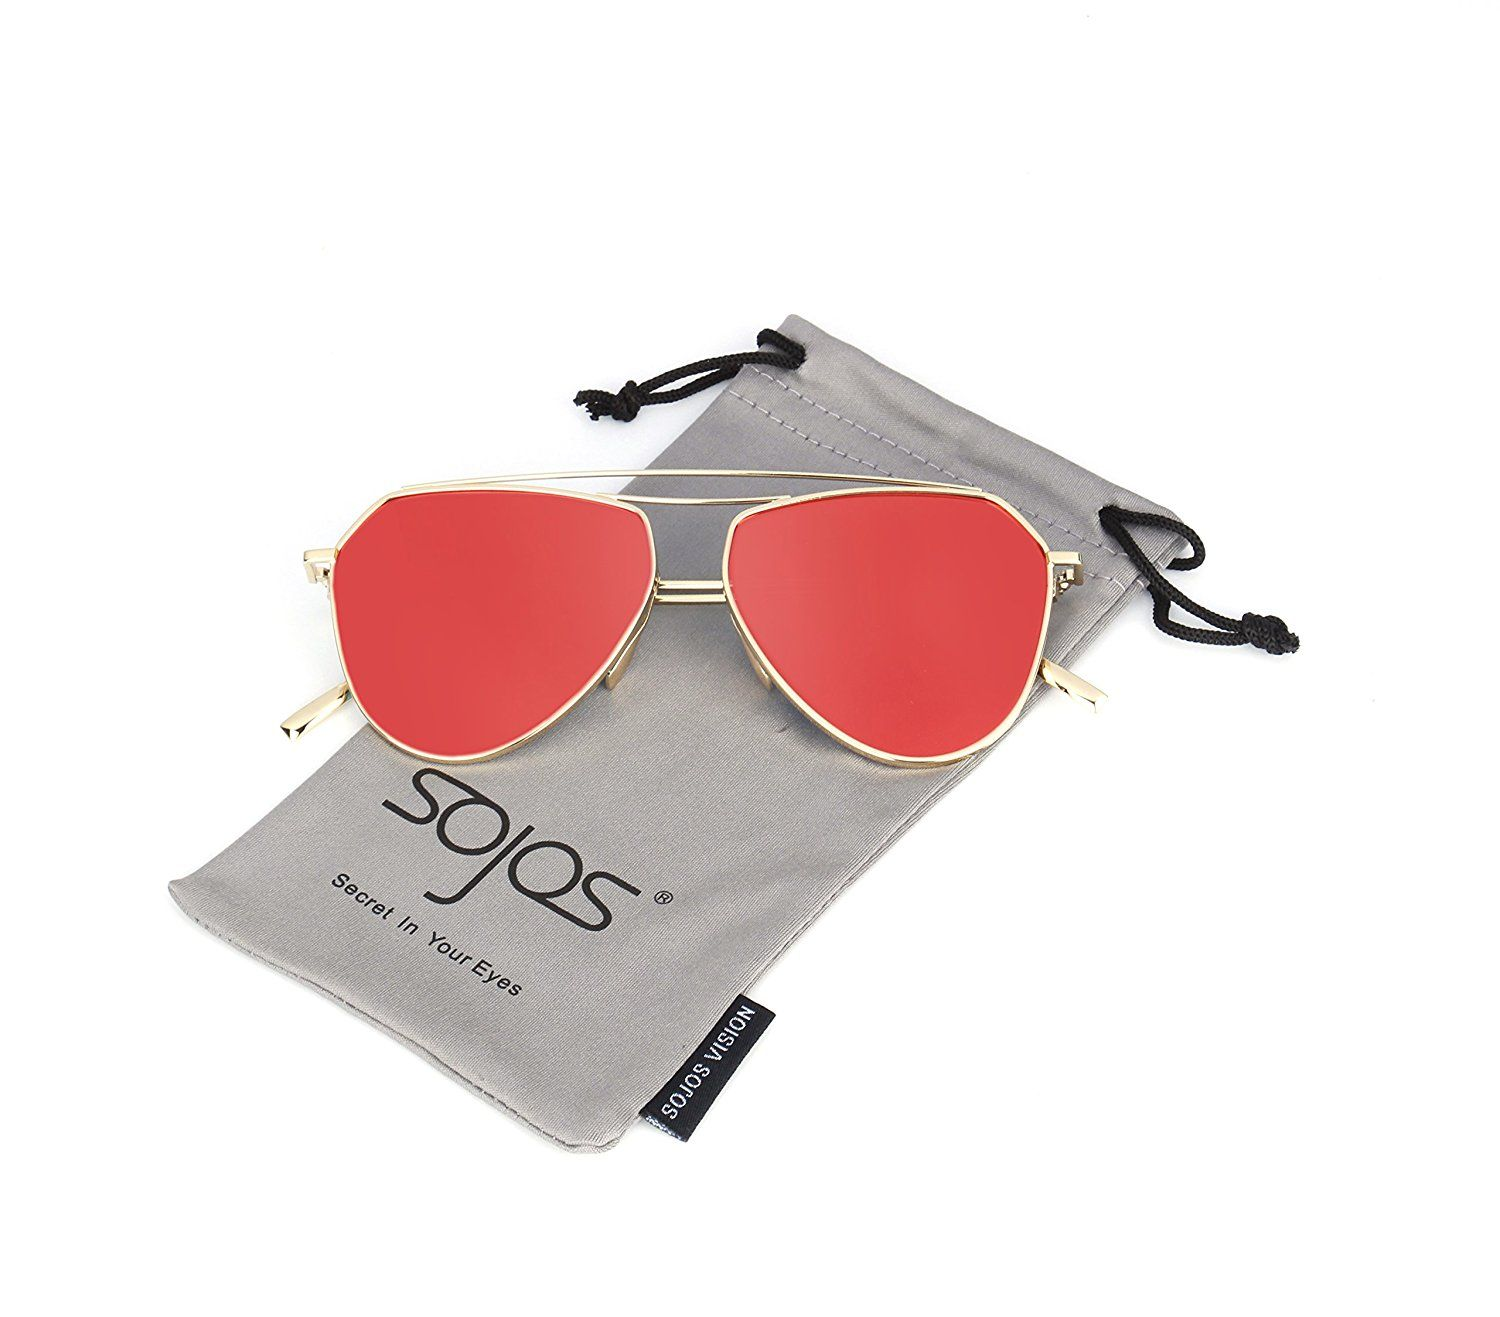 Amazon.com: SojoS Classic Metal Double Bridge Aviator Style Flash ...